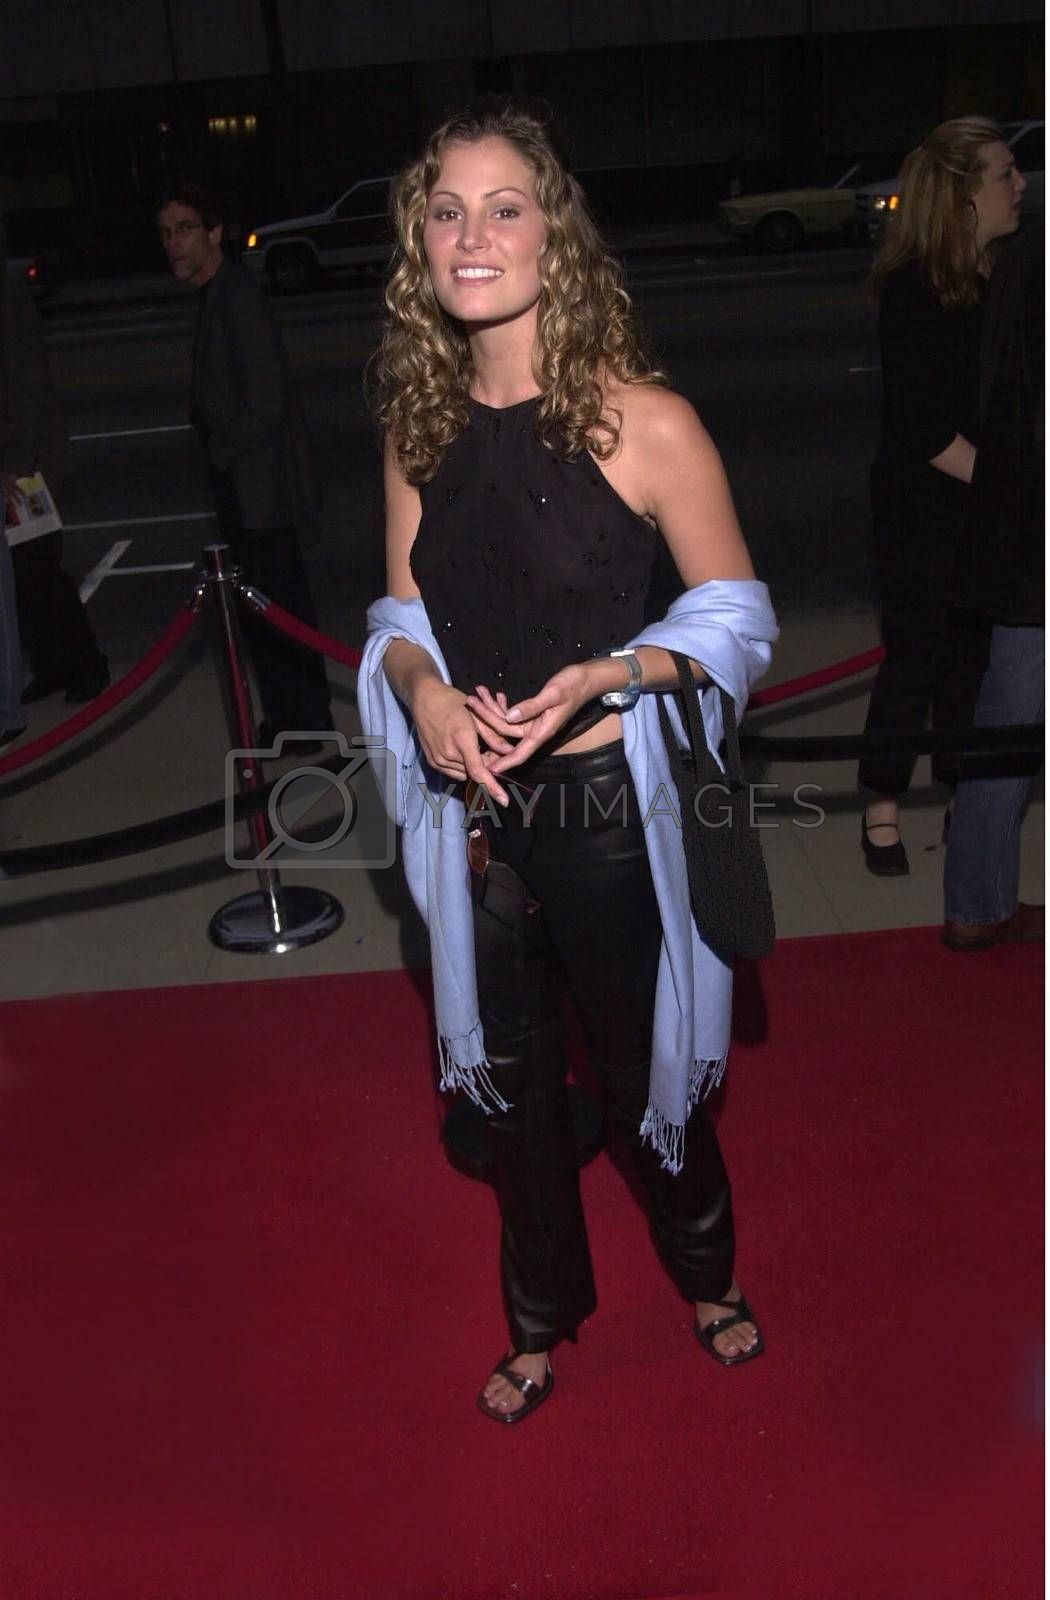 """Tracy Hutson at the premiere of Showtime's """"RATED X"""" in Hollywood, 04-27-00"""